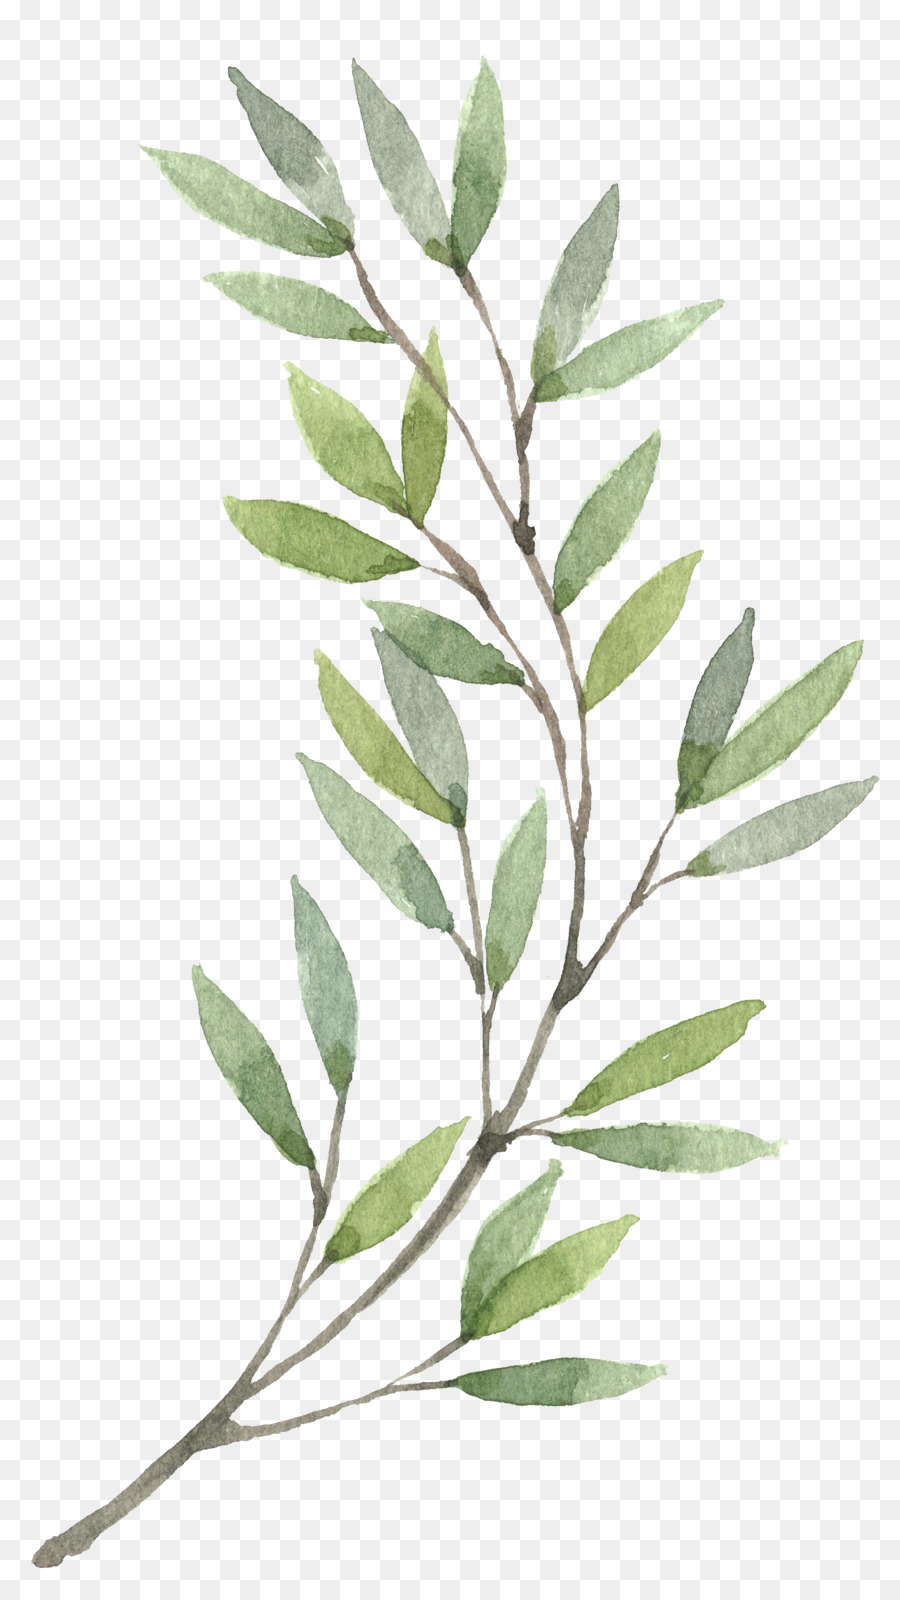 Stem Of A Plant PNG - 159778